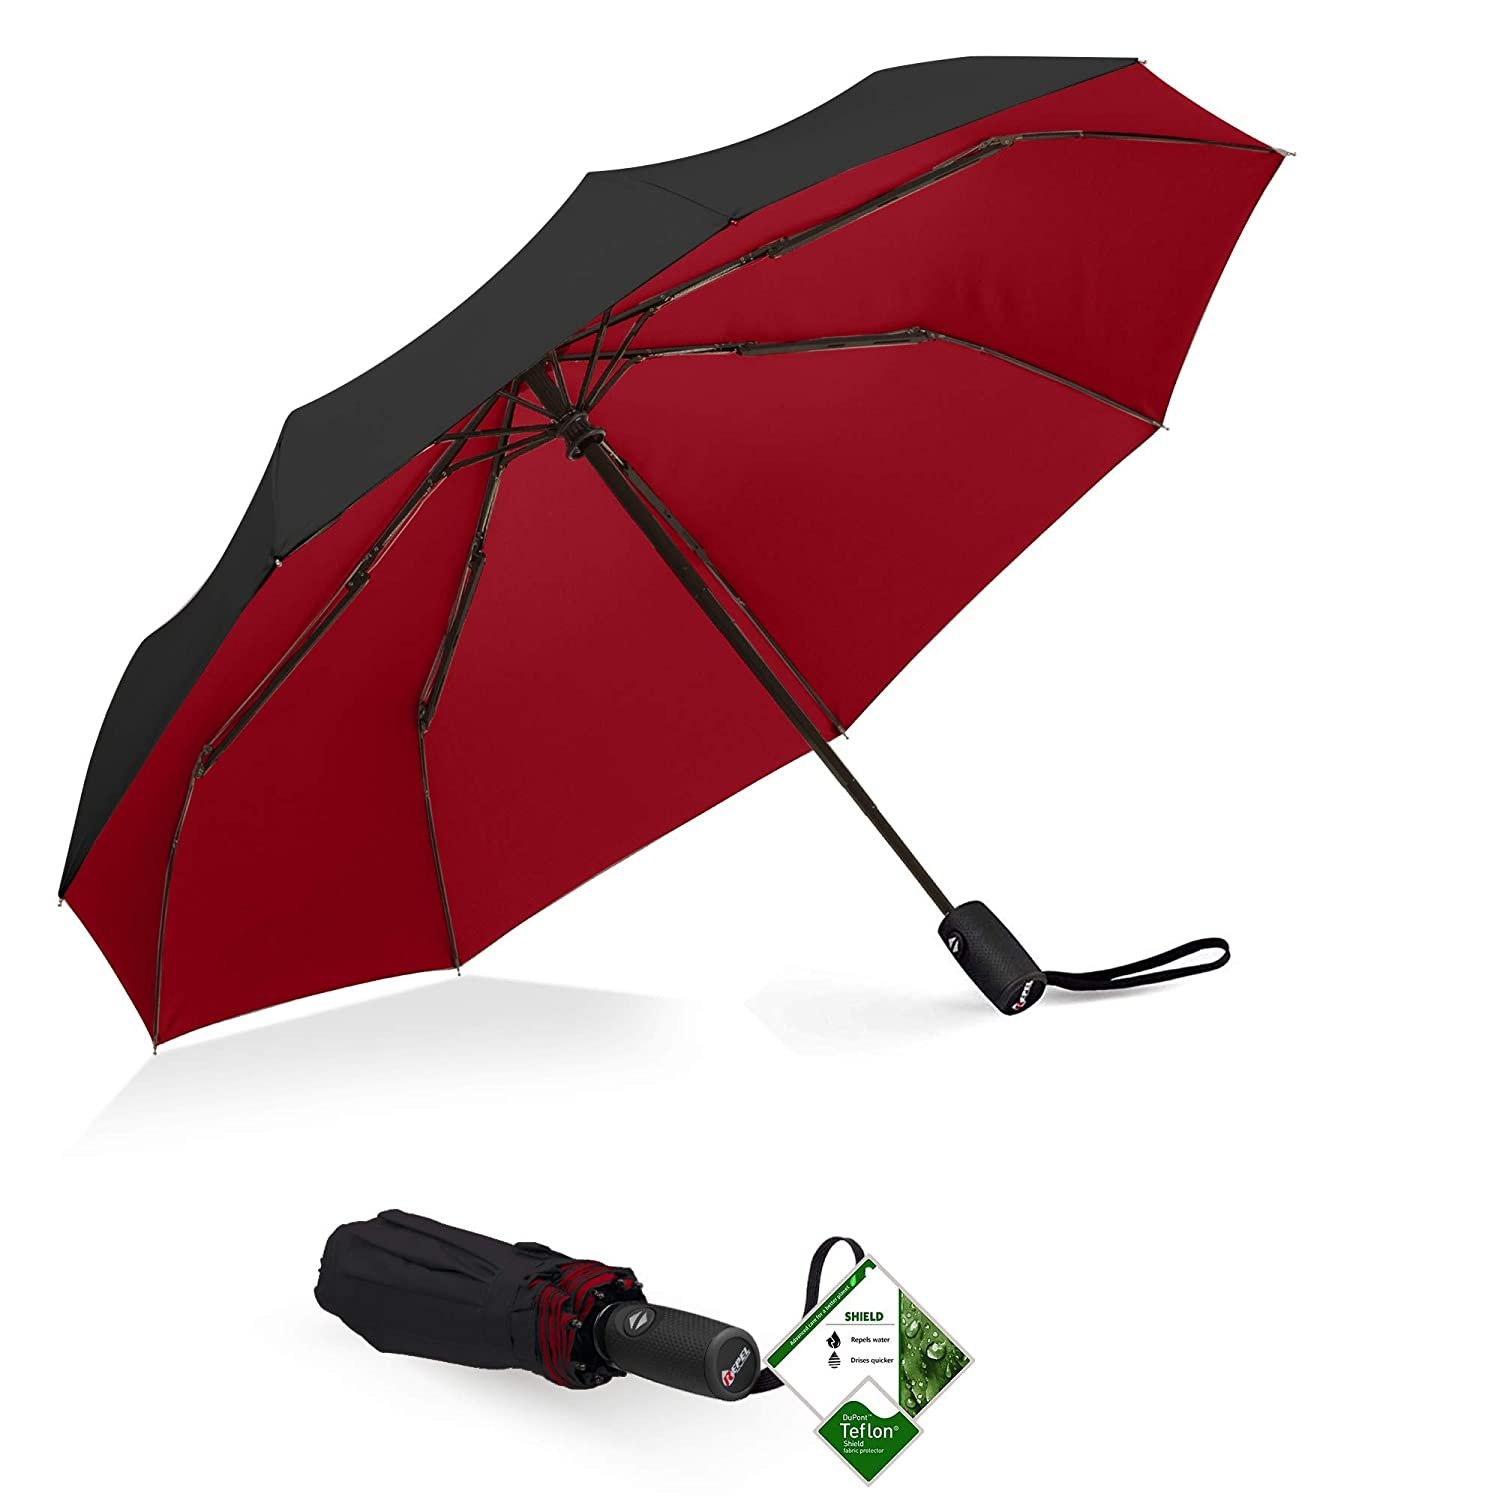 Repel Windproof Travel Umbrella with Teflon Coating (Black/Red)